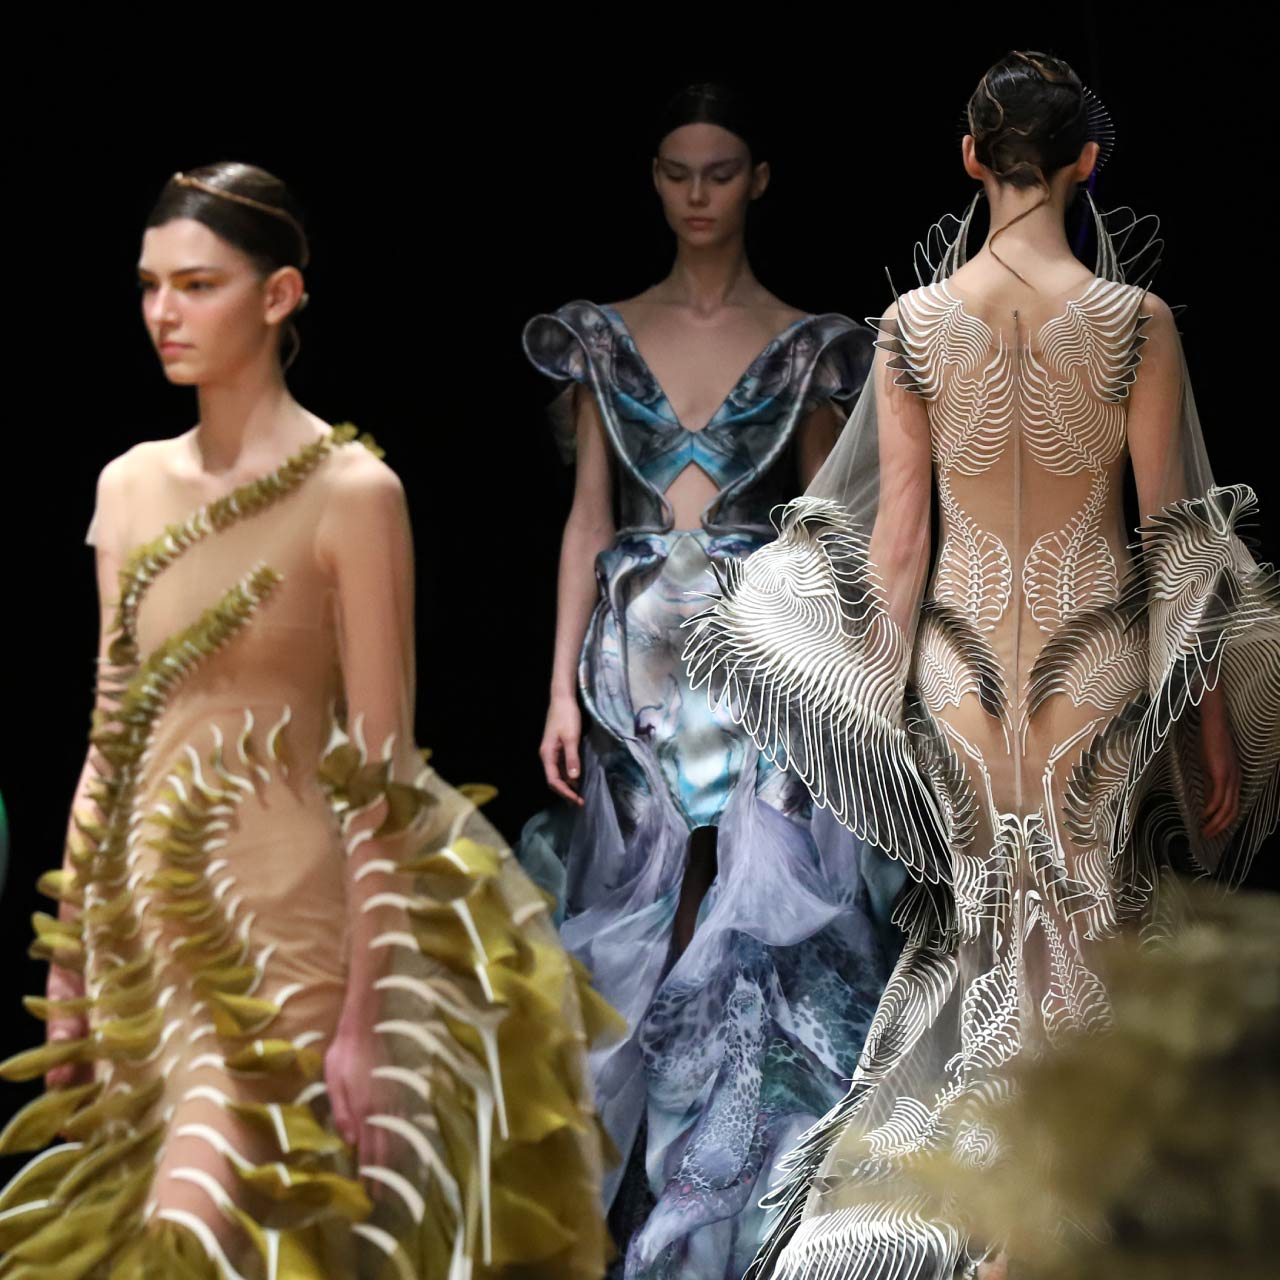 Contemporary Couture Techniques at Iris van Herpen | The Cutting Class. Models from the 'Sensory Seas' SS20 couture collection.